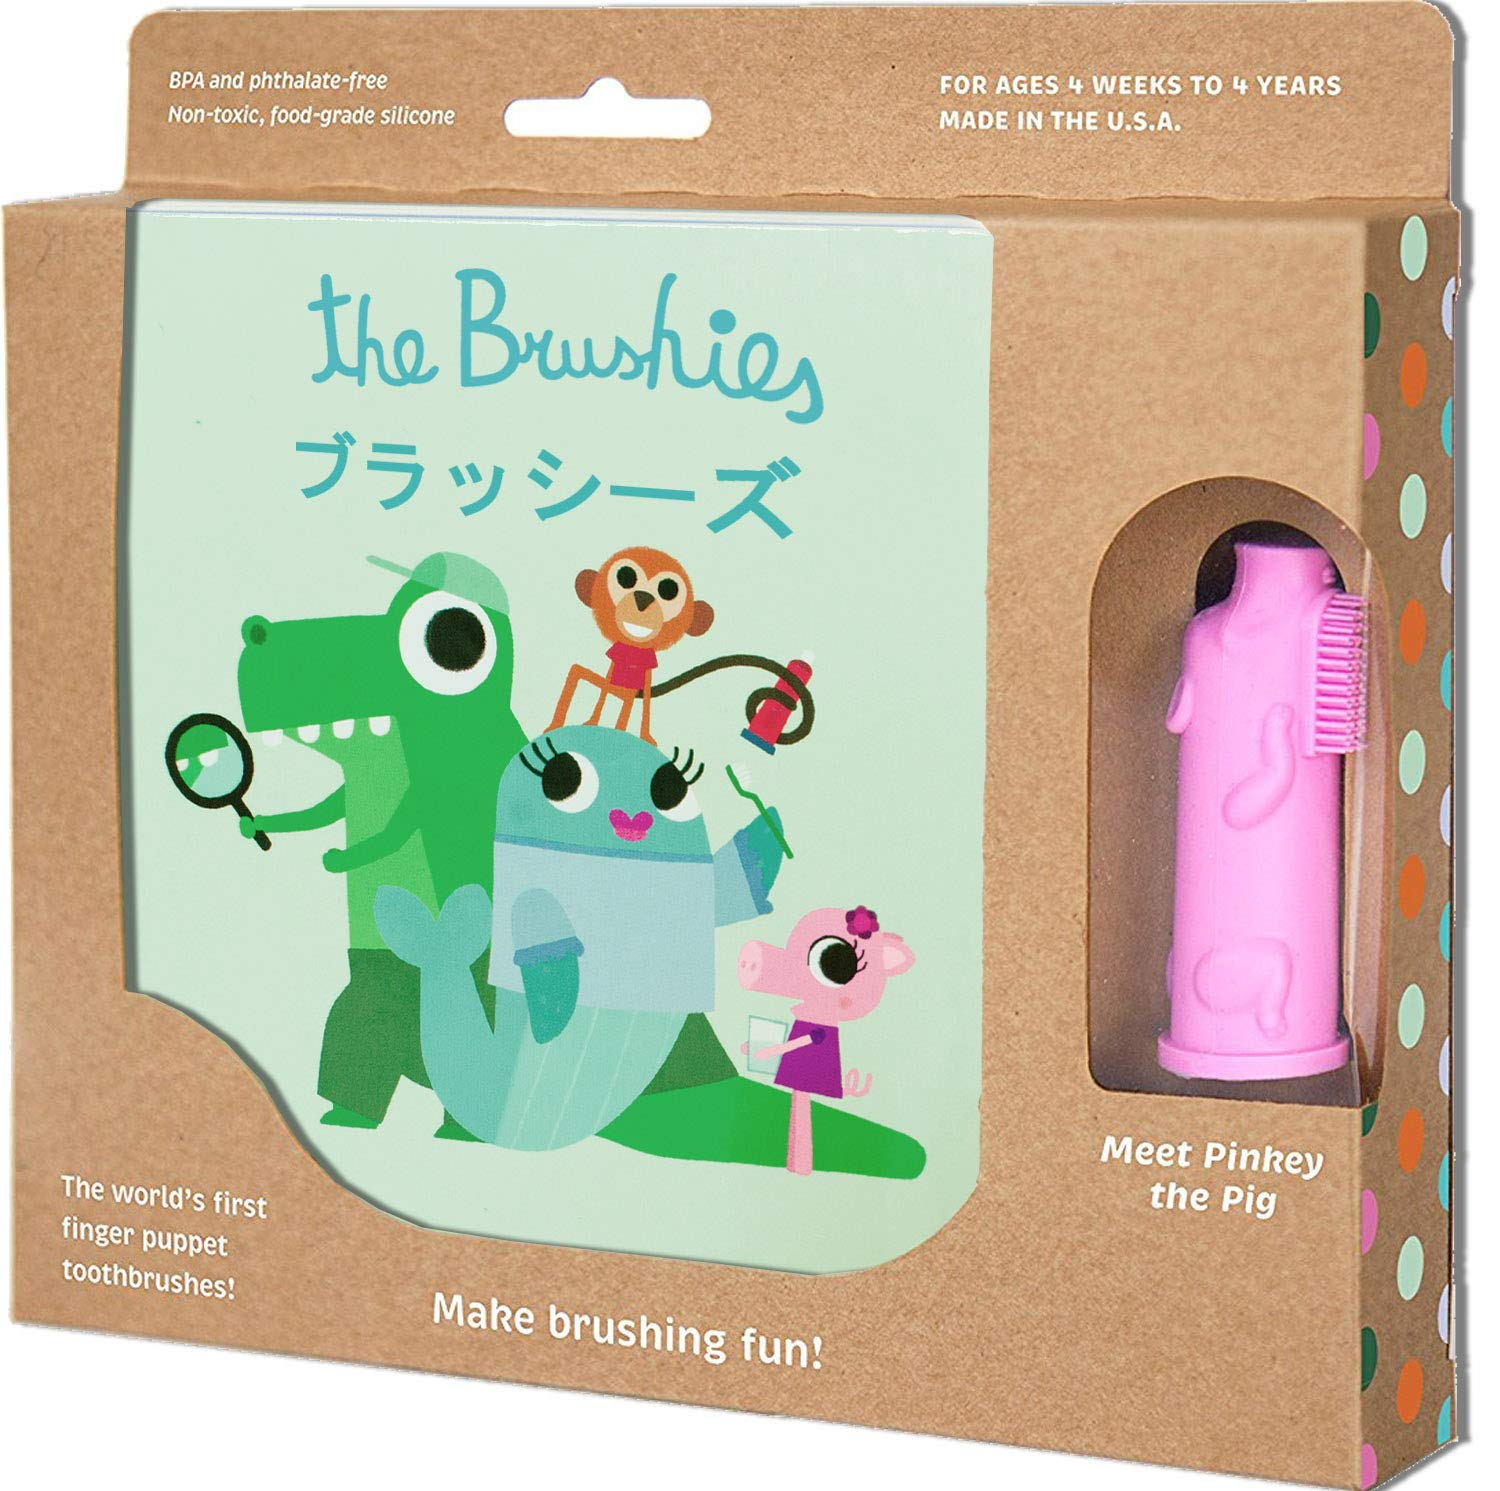 Baby and toddler toothbrush and storybook - Team member: Pinkey the Pig! The Brushies BSSP111